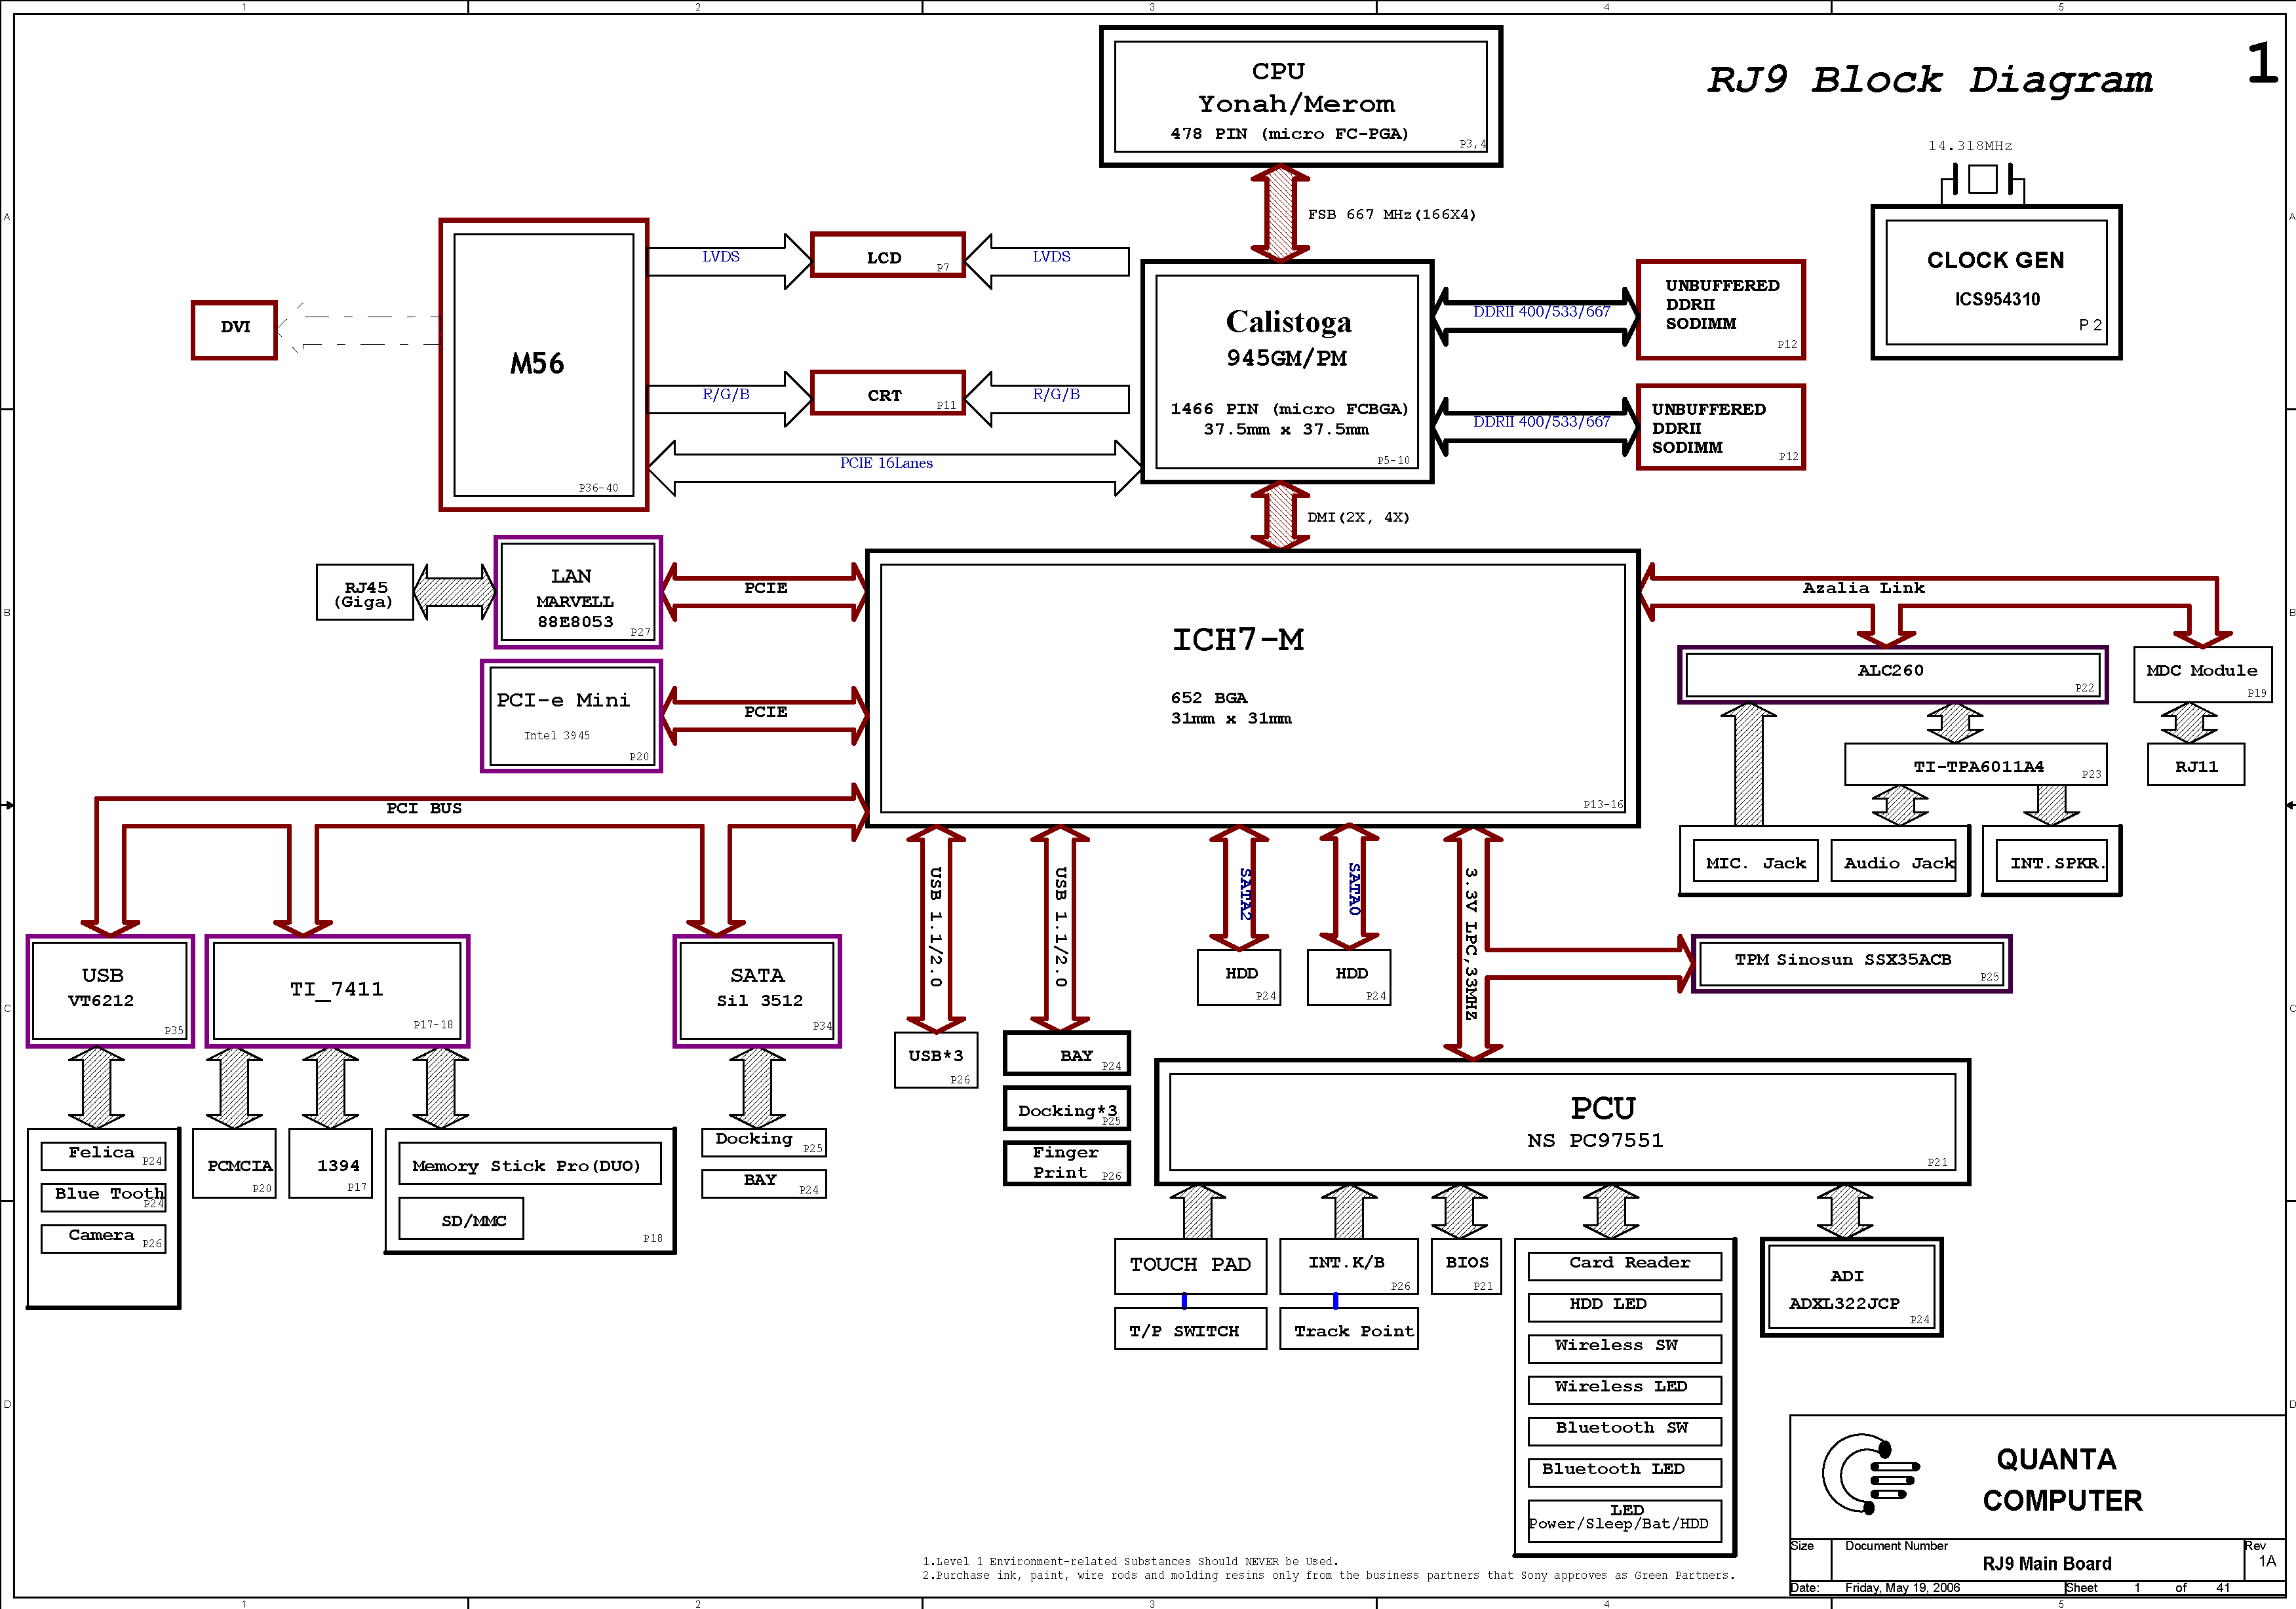 sony vaio rj9 schematics block diagram free schematic diagram rh datasheetgadget wordpress com block diagram feedback control block diagram feedback examples